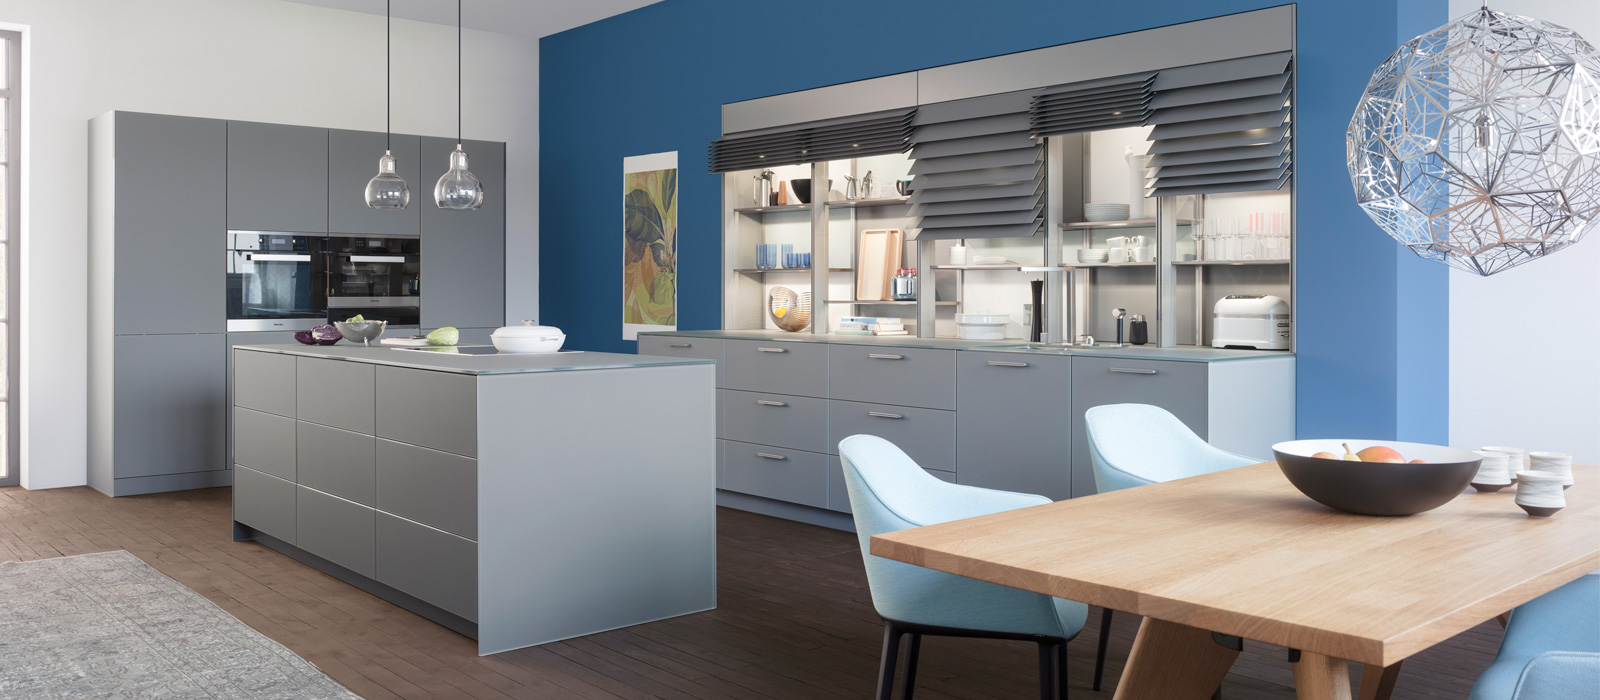 Leading Nyc Modern European Kitchen Provider Cabinets Leicht New York